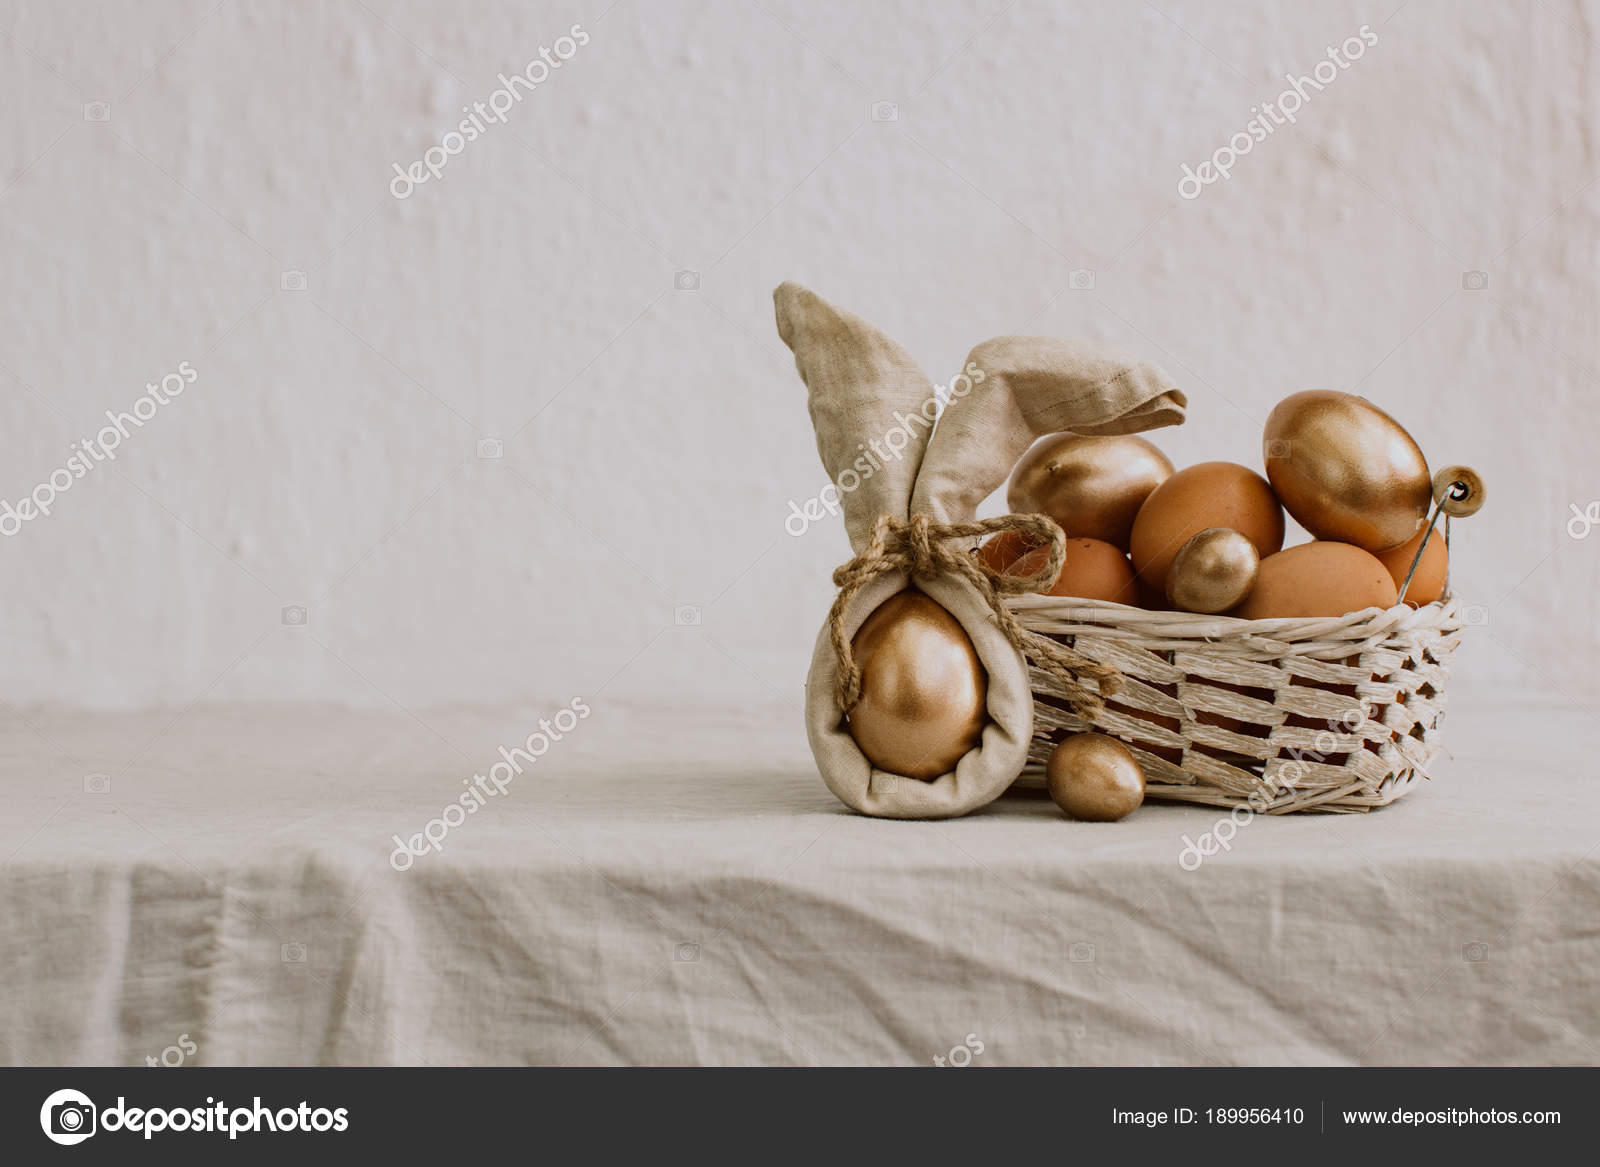 Rustic Happy Easter Funny Eggs Linen Napkin Rural Background Stock Photo